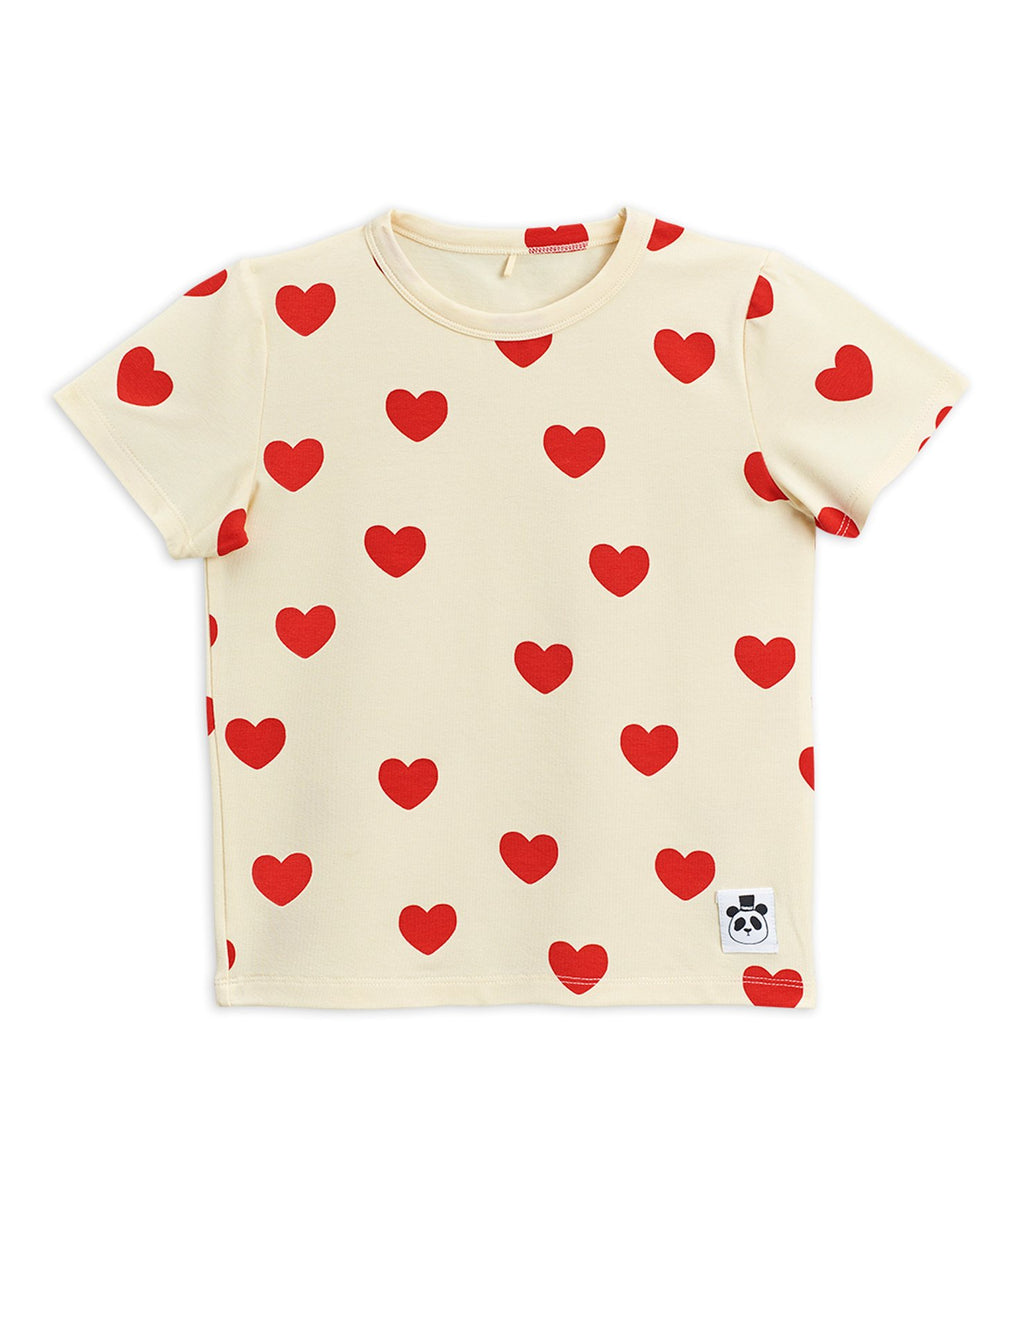 Mini Rodini Hearts Short Sleeve Tee